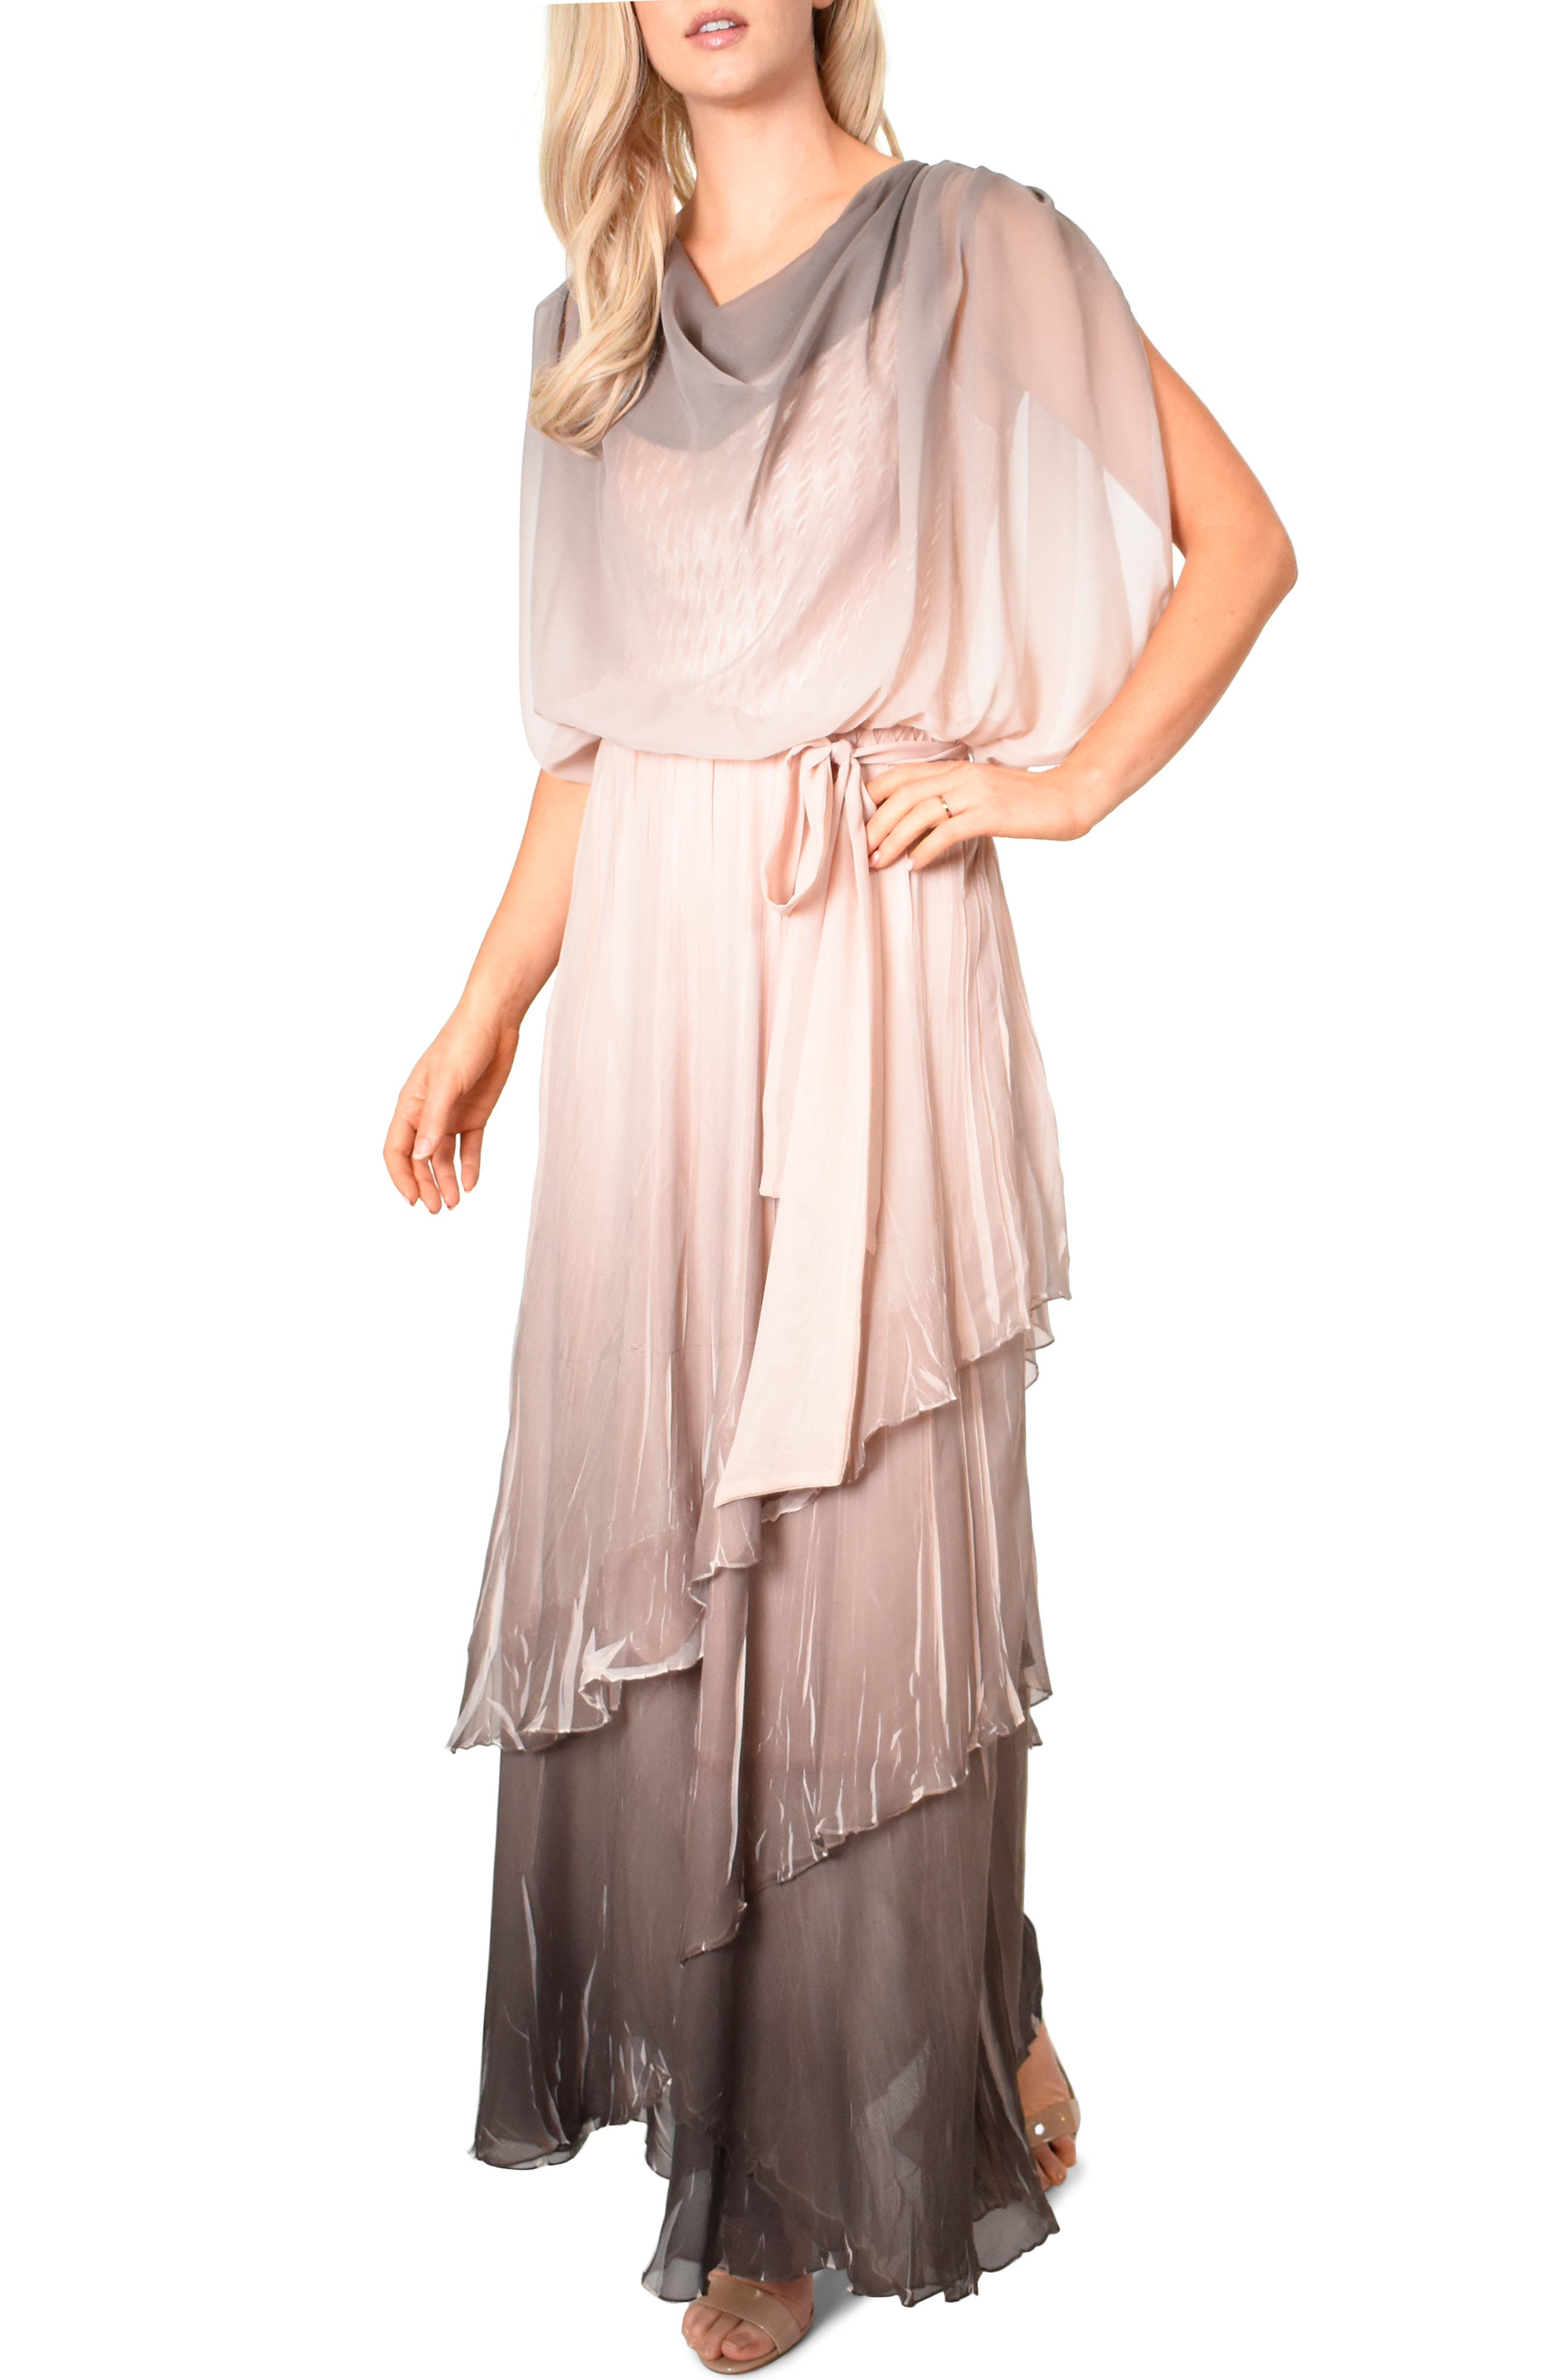 KOMAROV, Drape Chiffon Gown, Main thumbnail 1, color, 250